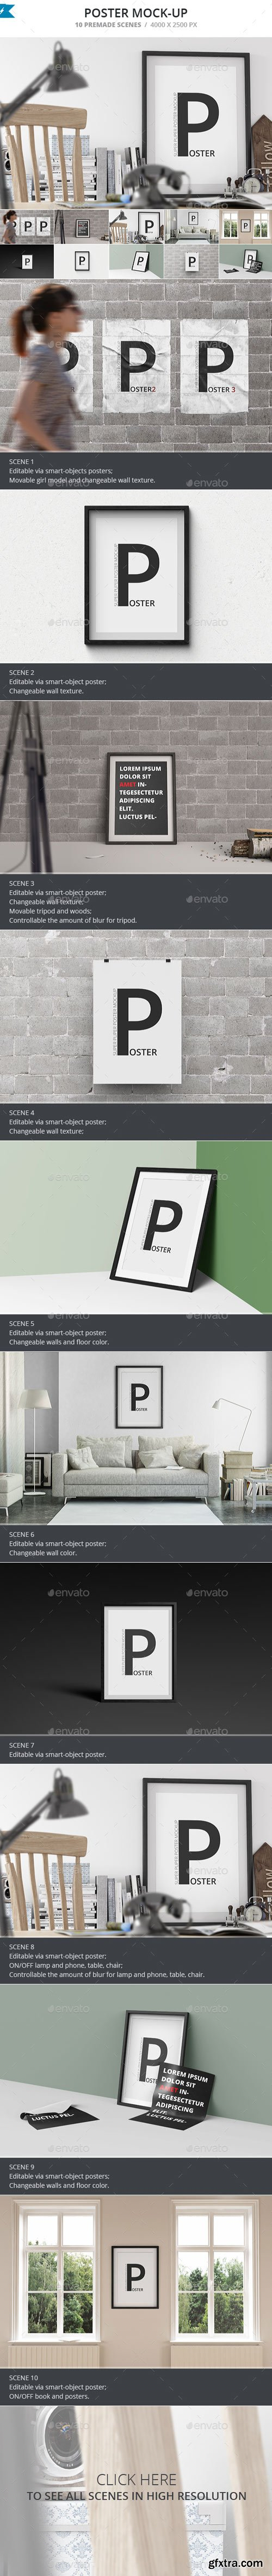 Graphicriver - 13043695 Poster Mock-up